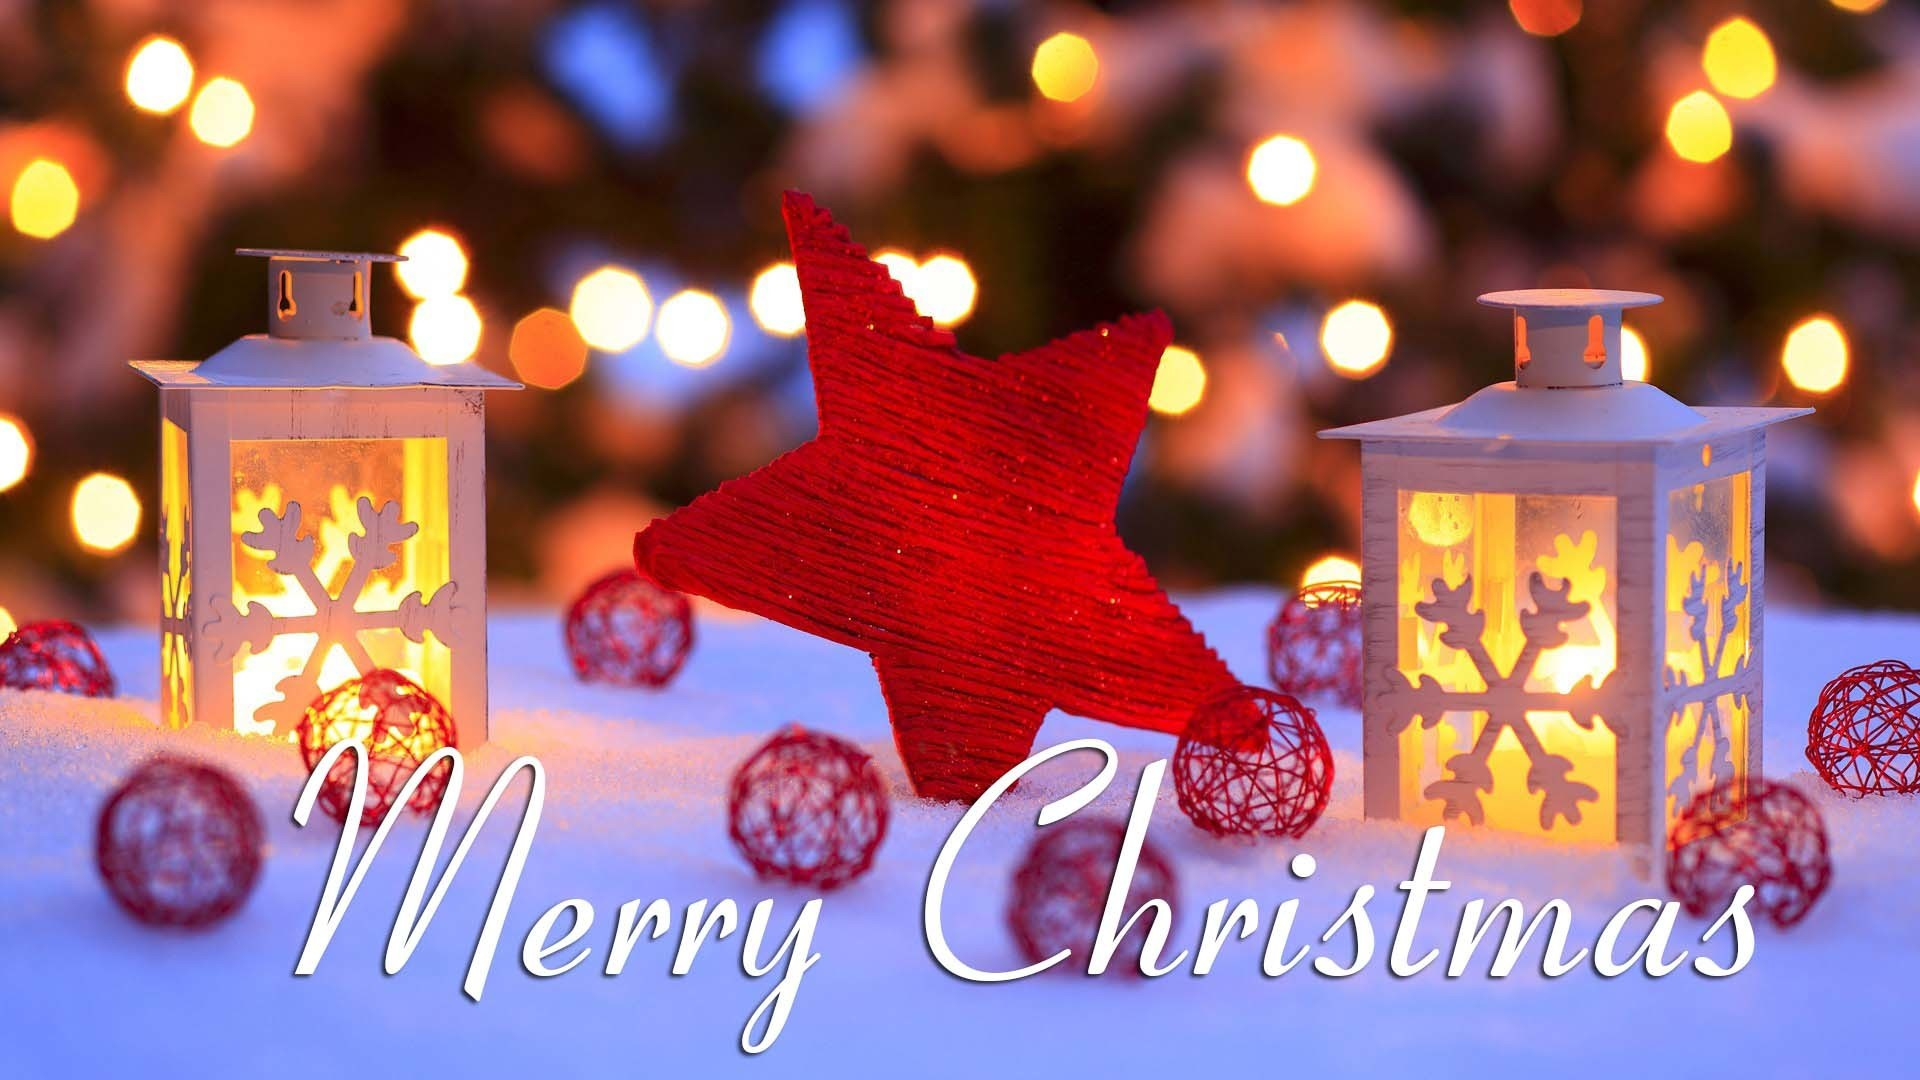 1920x1080  Merry-Christmas-and-Happy-New-year-hd-free-